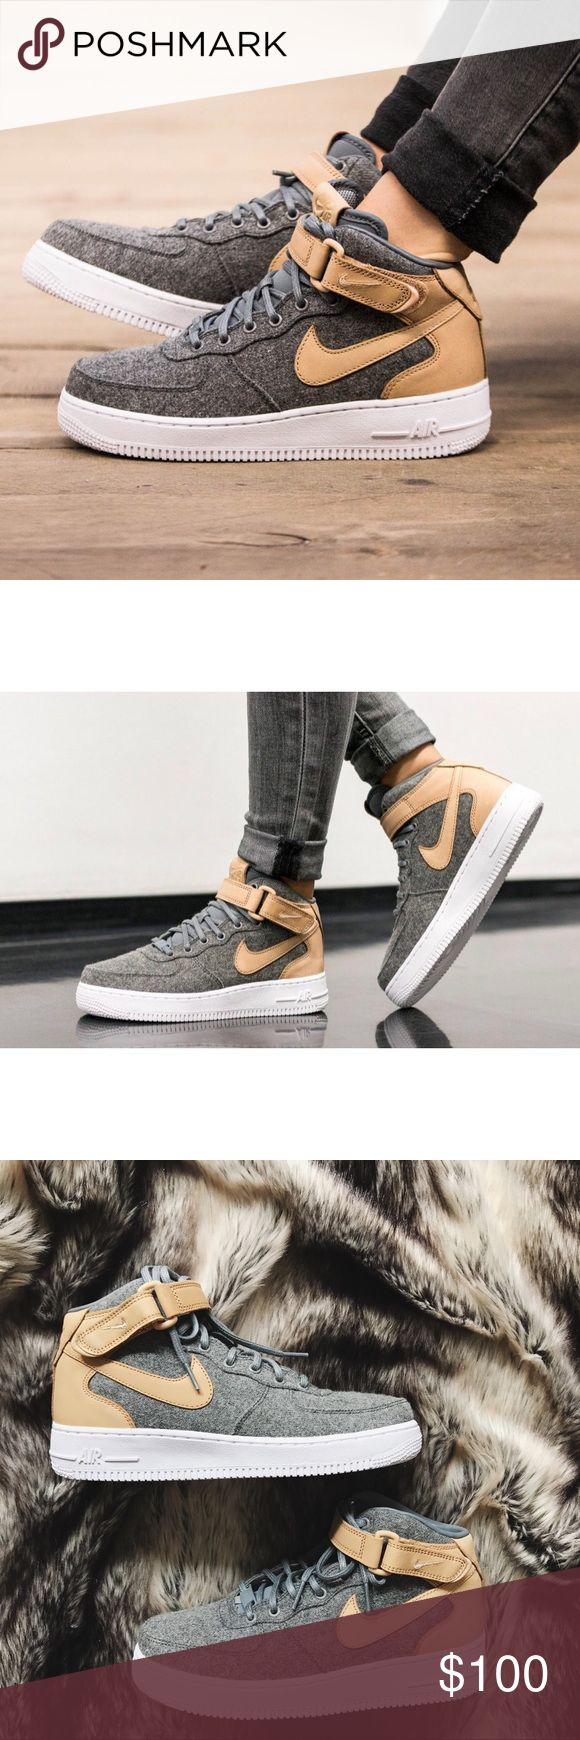 Nike Air Force 1 '07 Mid Leather Premium Sneakers •Premium grey wool and oatmeal leather accents. •Women's size 8.5, best for a normal-wide width foot. •New in box (no lid). •NO TRADES/HOLDS/PAYPAL/MERC/VINTED/NONSENSE. Nike Shoes Sneakers